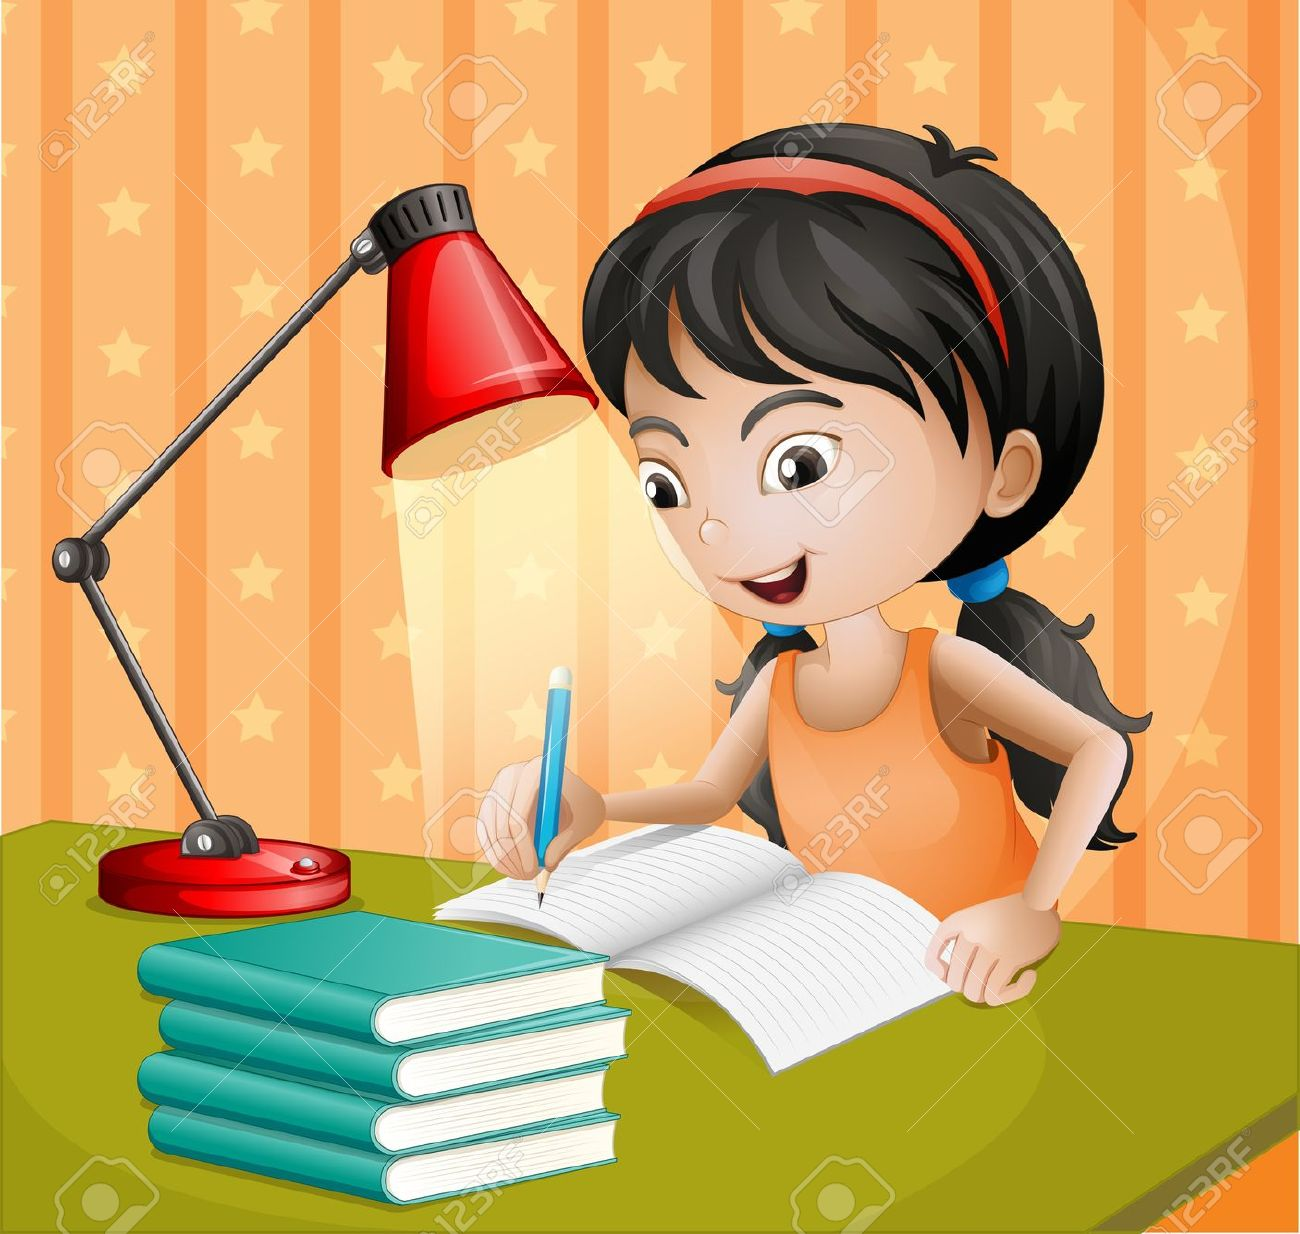 Illustration Of A Girl Writing With A Lampshade Royalty Free